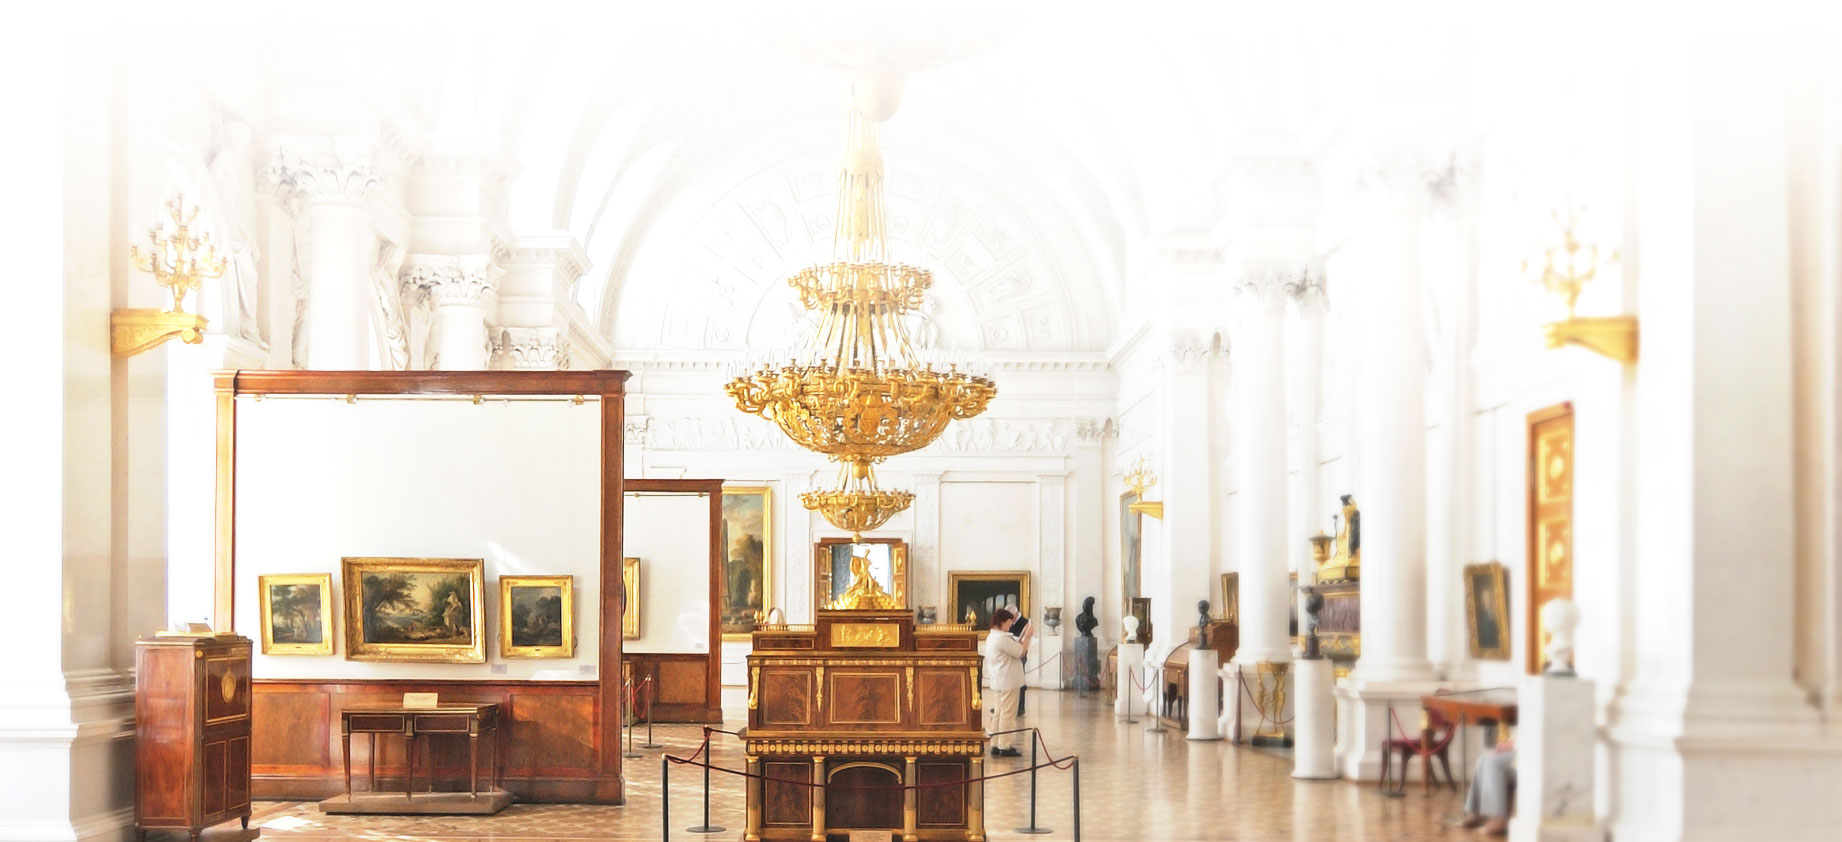 Museums: maintaining the right temperature and humidity level